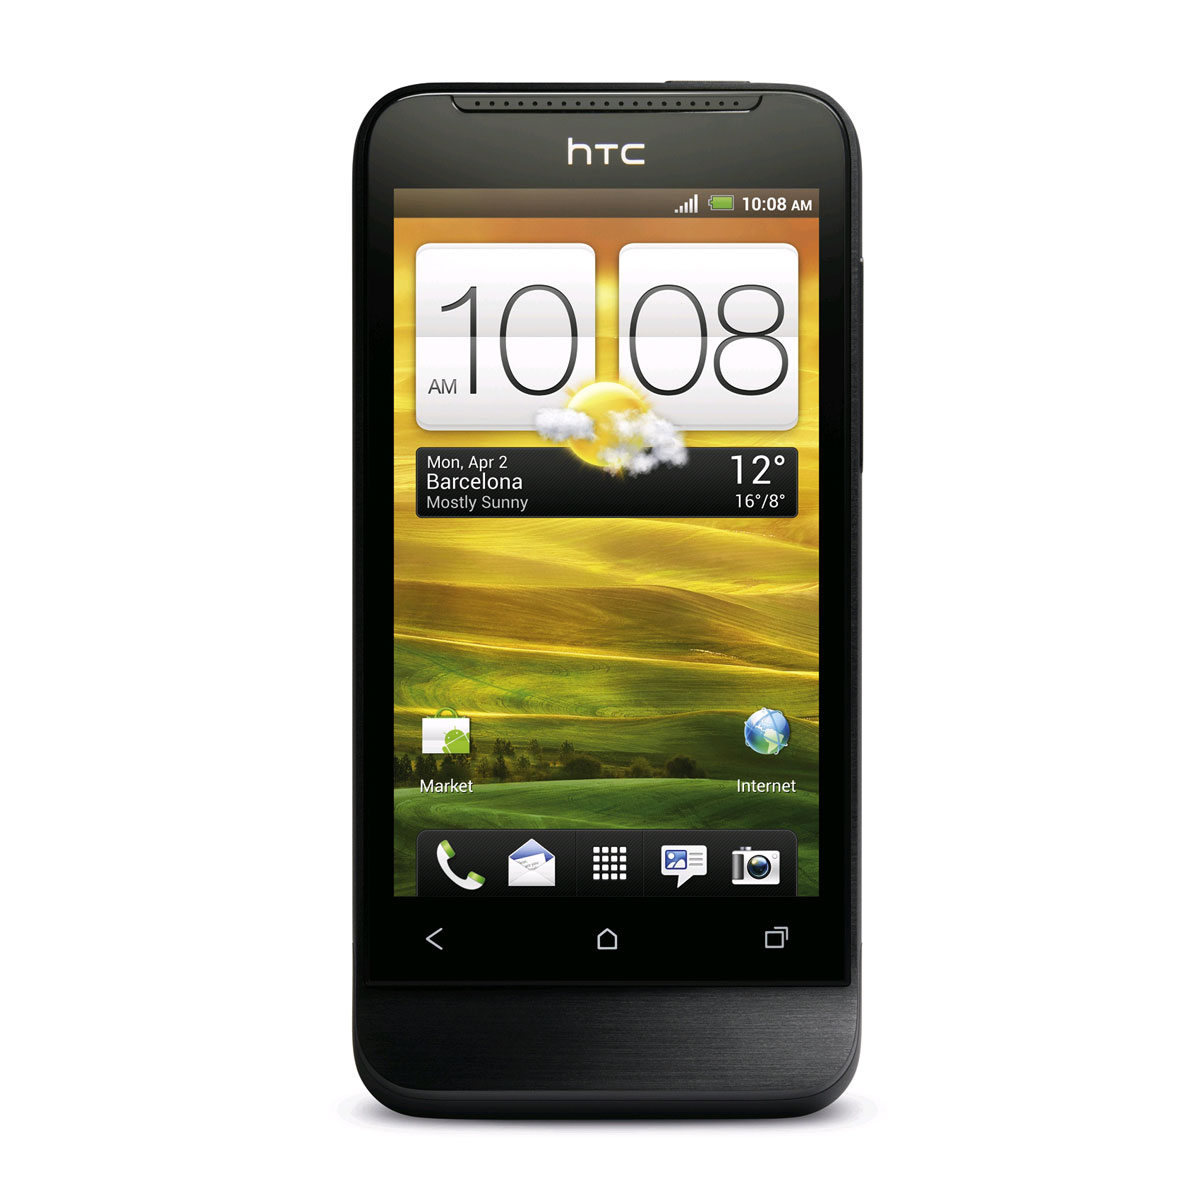 "Mobile & smartphone HTC One V Black Obsidian Smartphone 3G+ avec écran tactile 3.7"" sous Android 4.0"